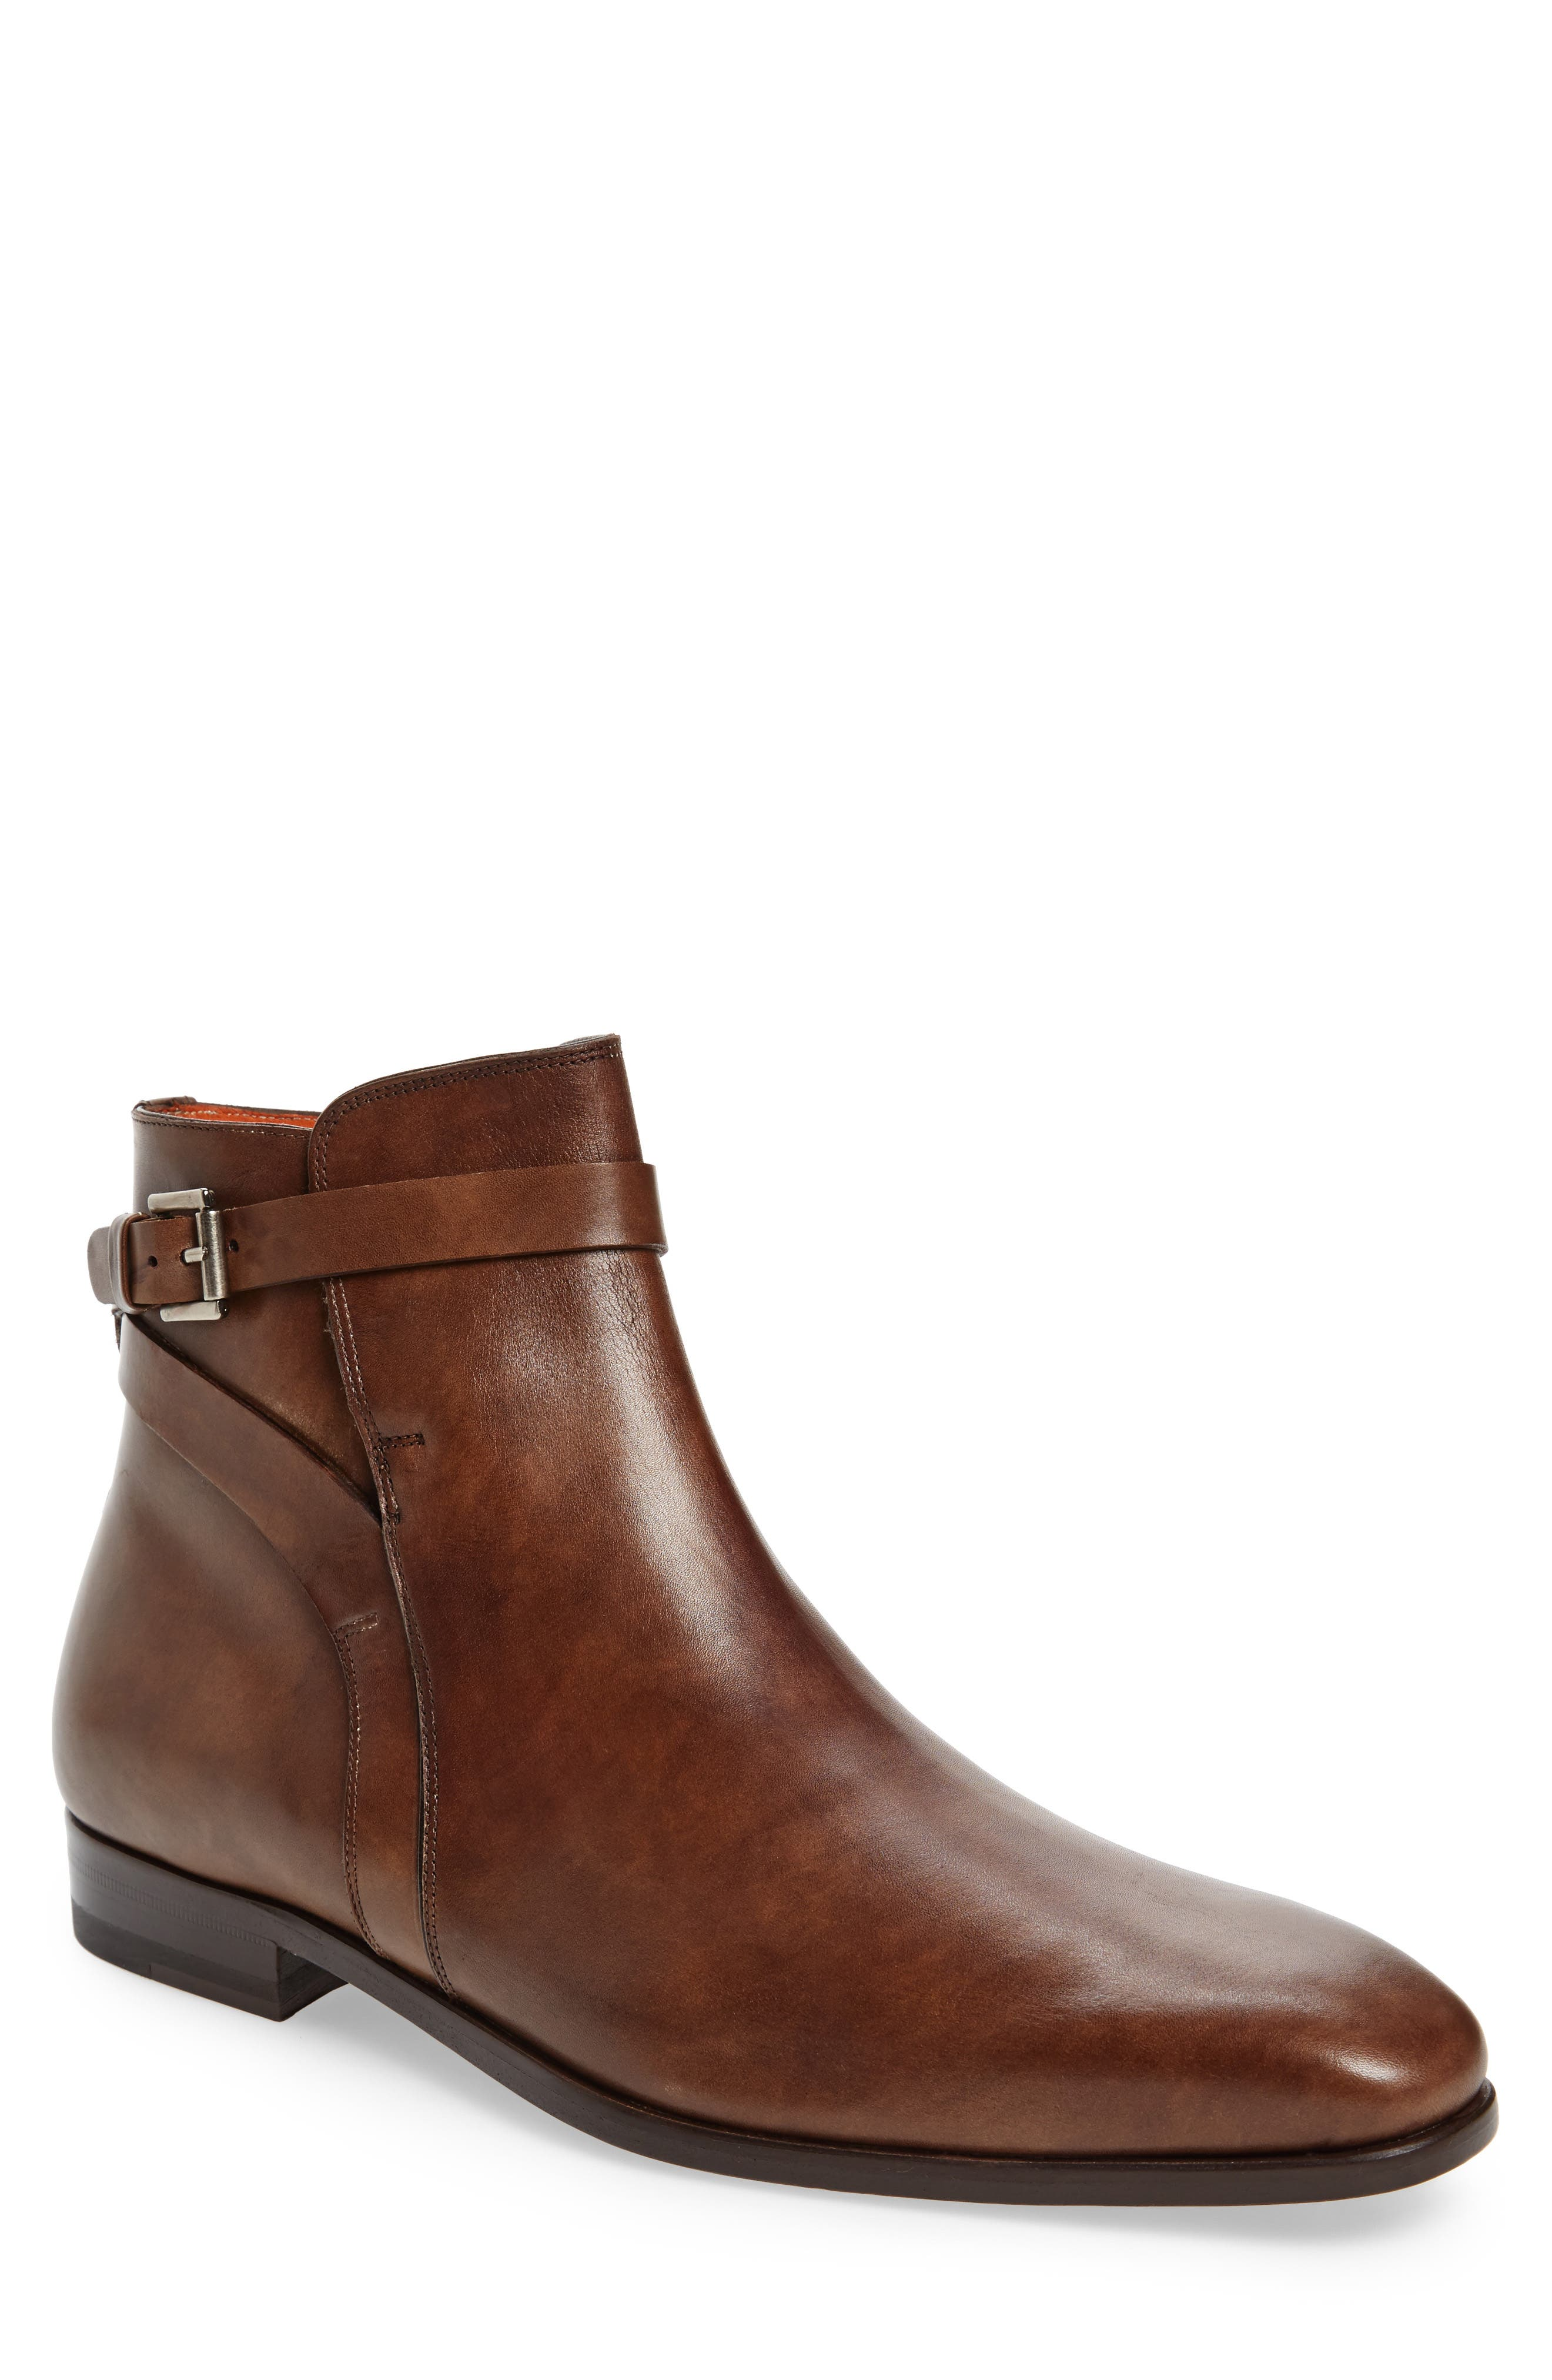 Viso Zip Boot,                             Main thumbnail 1, color,                             TAUPE LEATHER